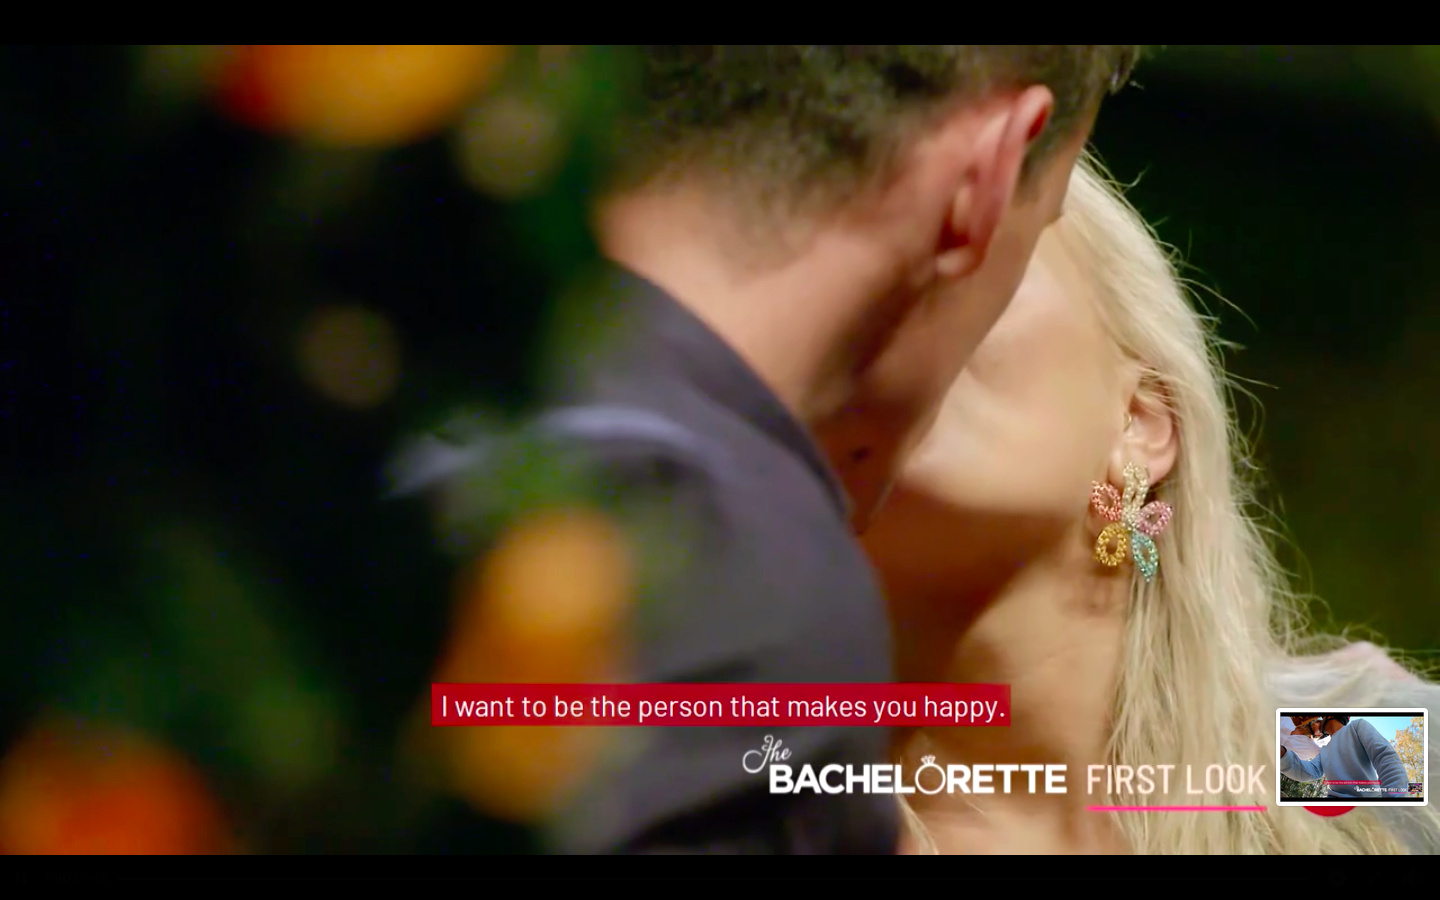 Bachelorette Australia - Season 6 - Elly and Becky Miles - Screencaps - Discussion - *Sleuthing Spoilers*  - Page 5 Screen91